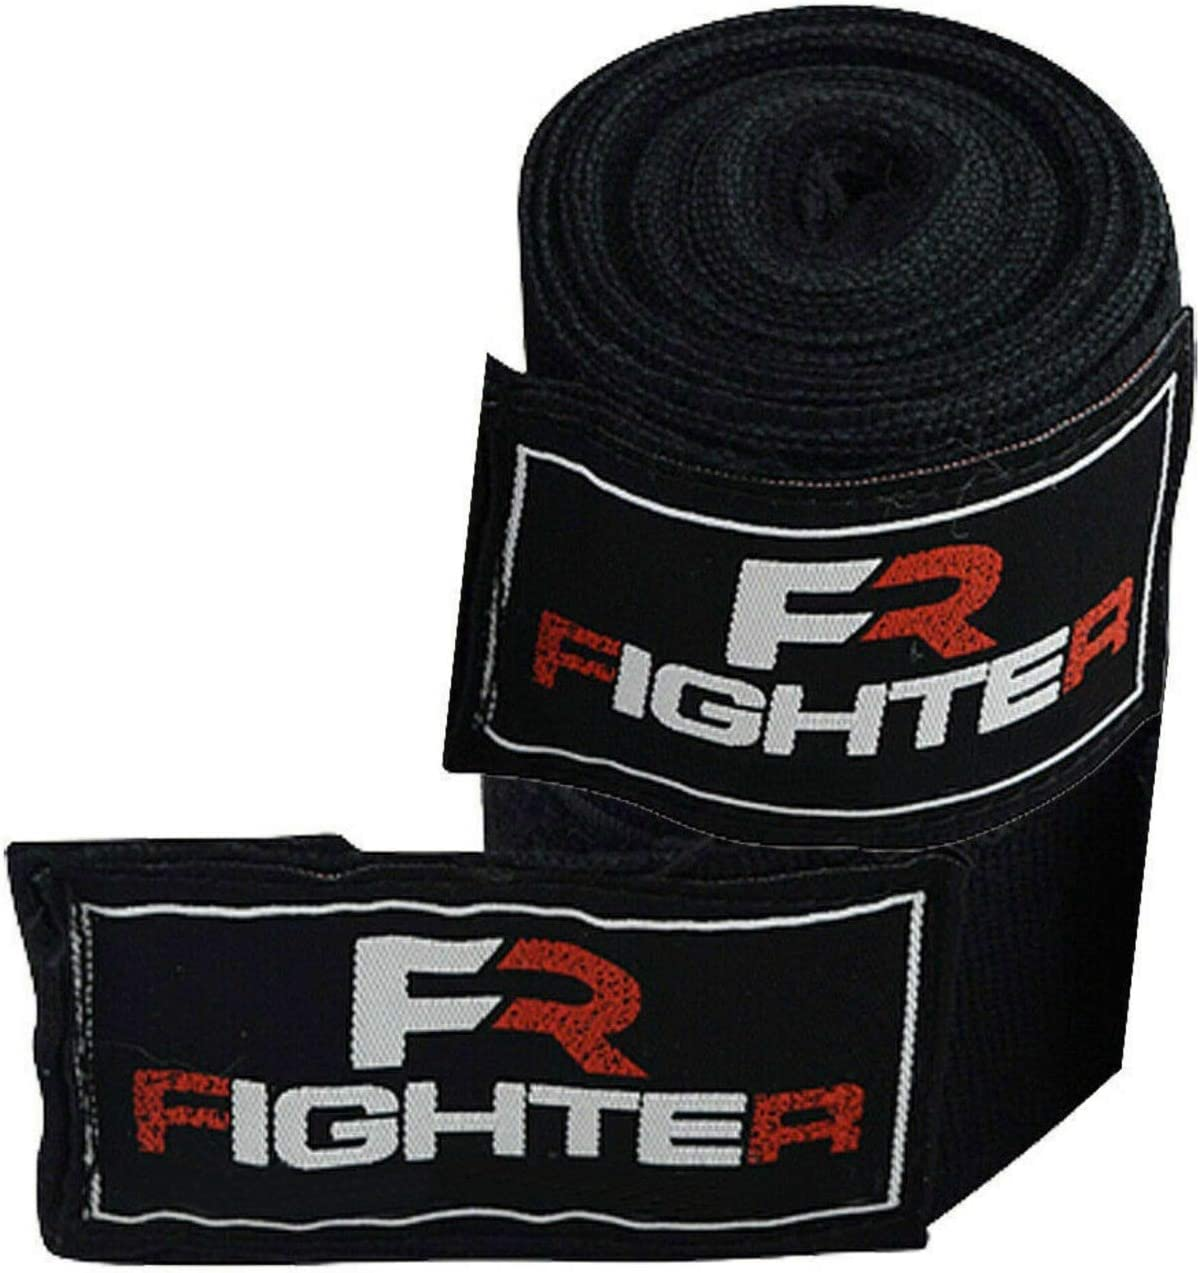 Fist Protector Hand Wraps Boxing MMA Bandages Muay Thai Inner Straps Gloves 4.5m